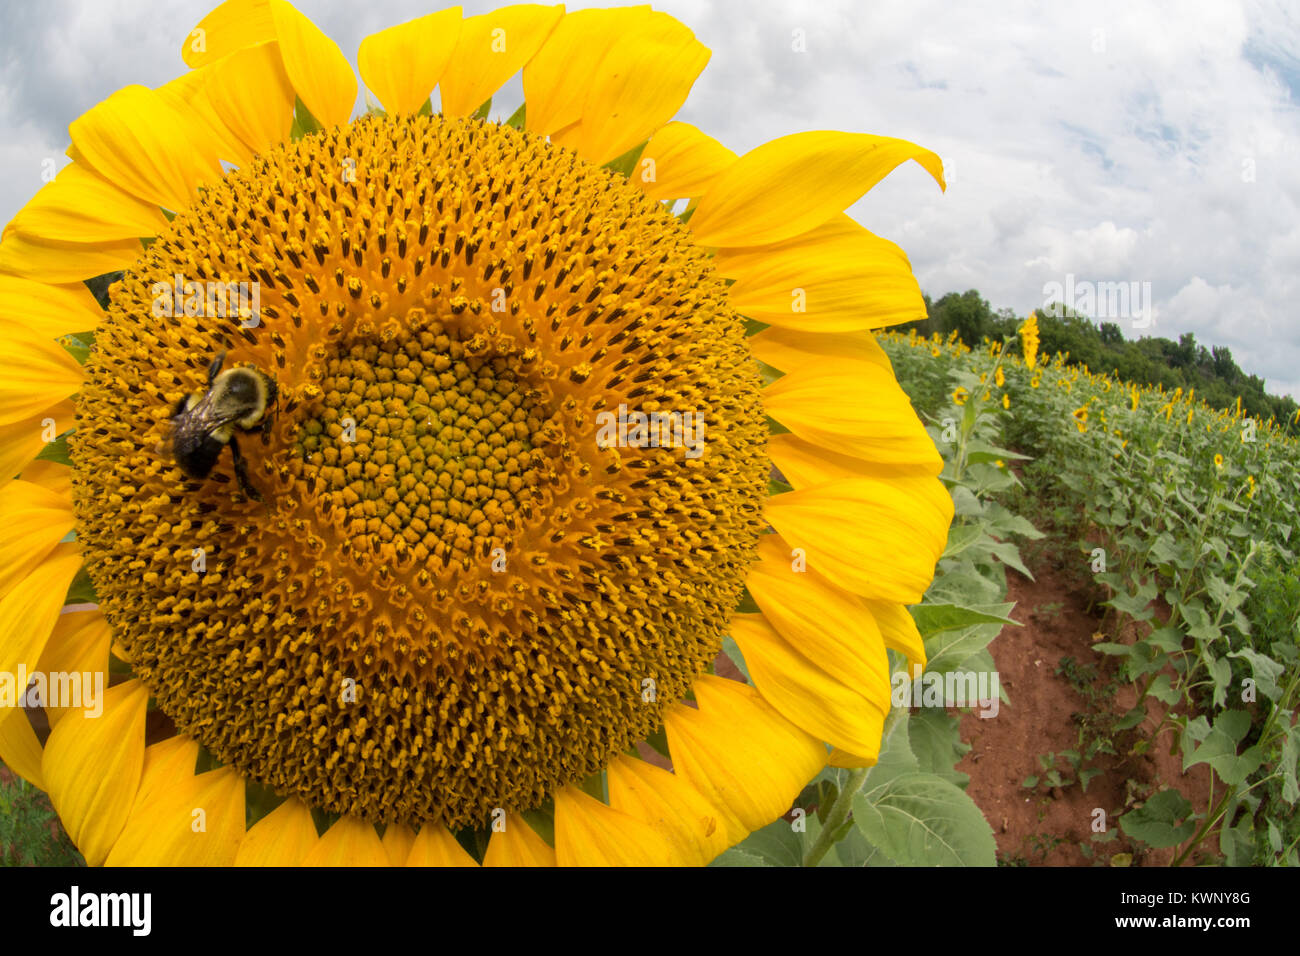 Sunflowers are grown to attract birds and pollinators to a wildlife preserve in Maryland, United States of America. - Stock Image